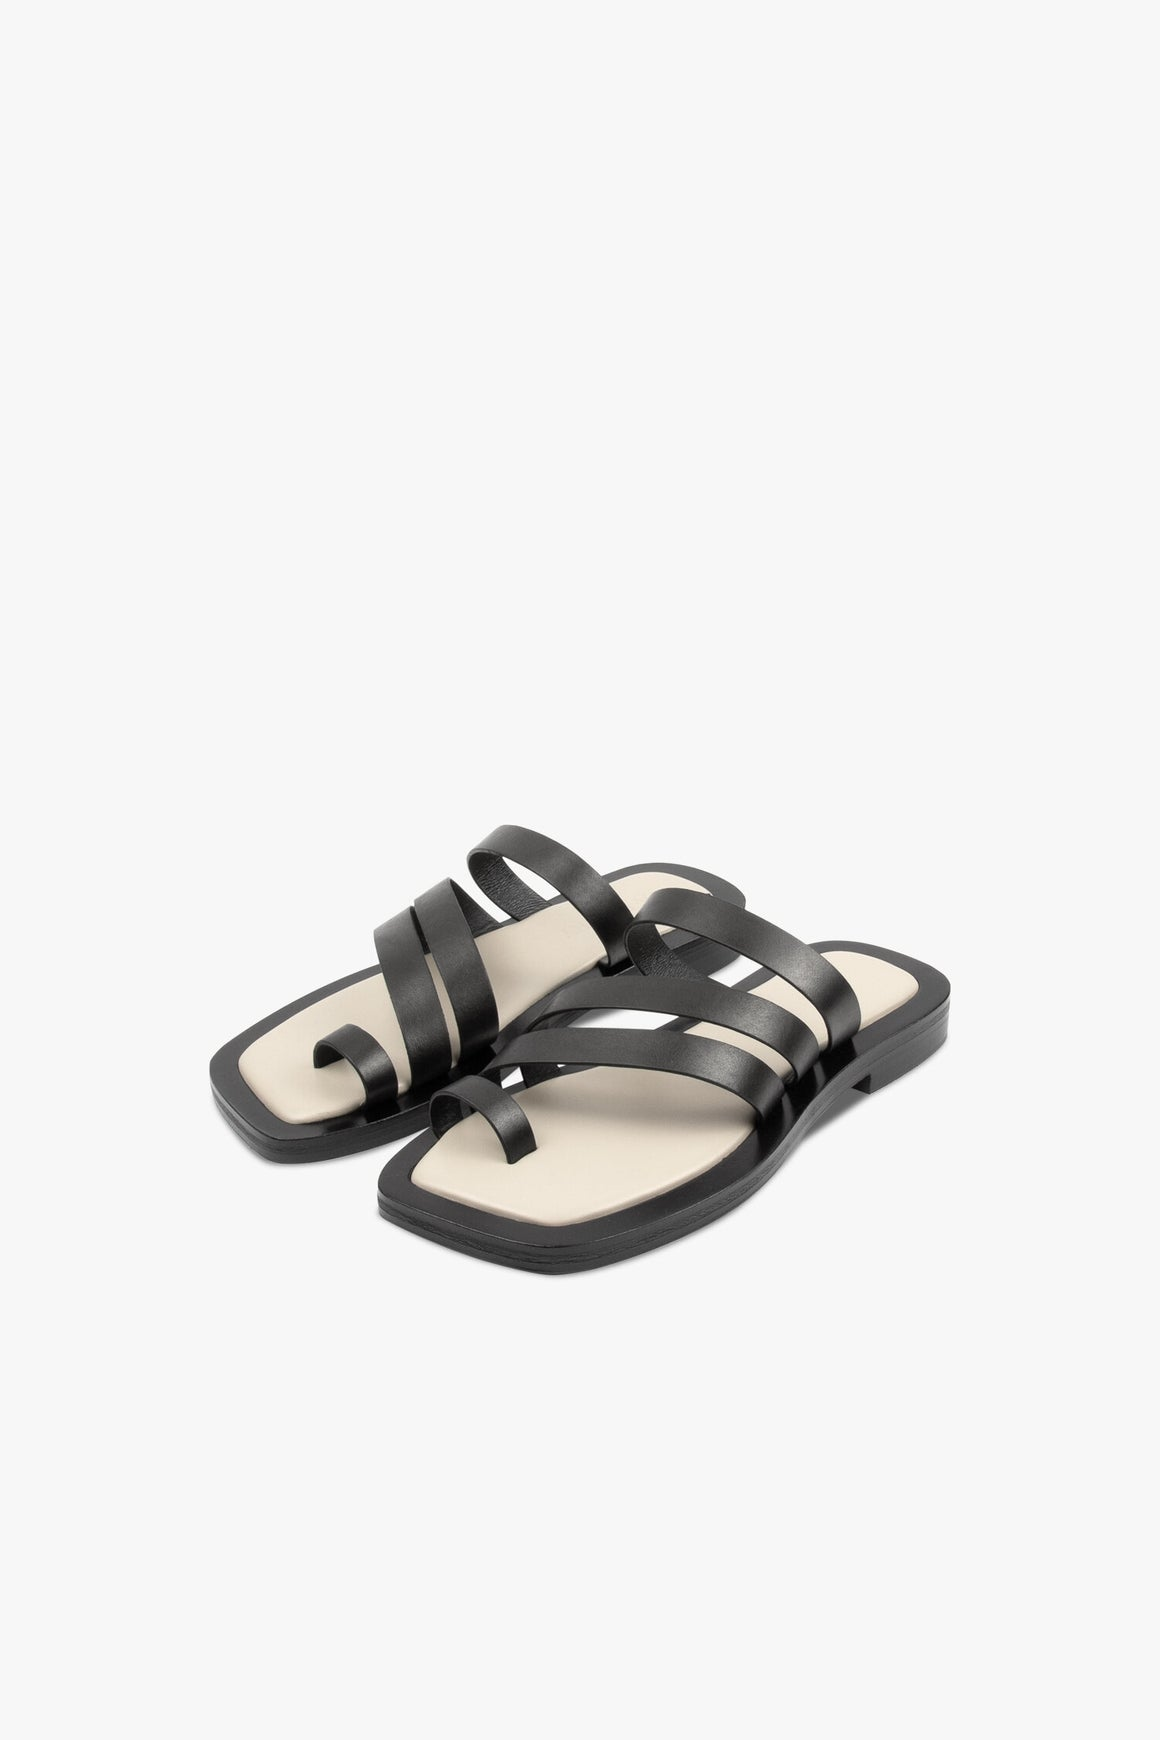 The Liam sandal features three thick straps that sit across the front of the foot. This slide style is grounded on our signature chunky footbed with black welt and contrast padded insole.